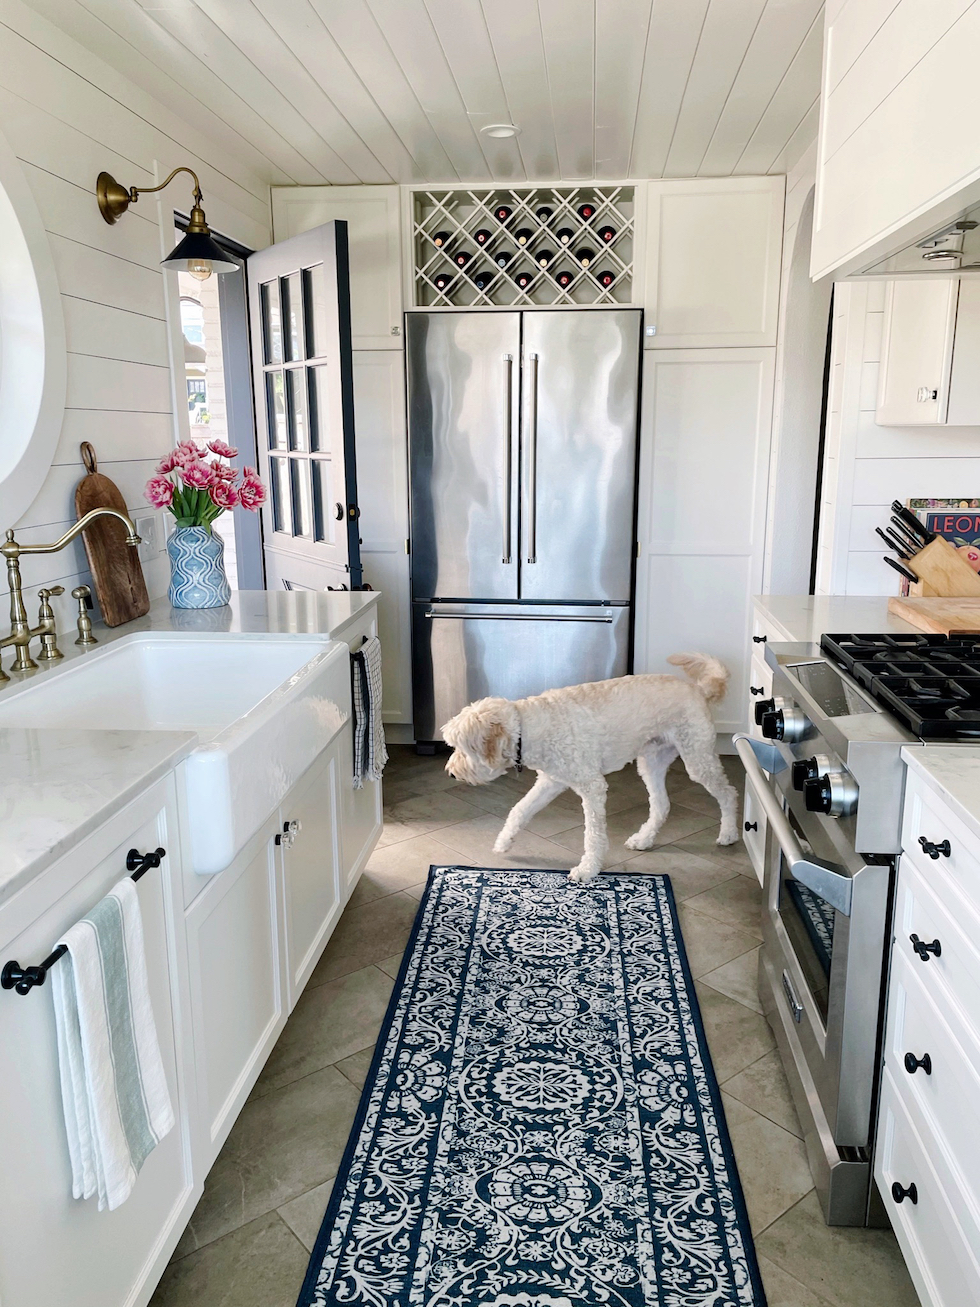 New Kitchen Runner (+ My Honest Thoughts on Ruggable Rugs and Favorite Designs)